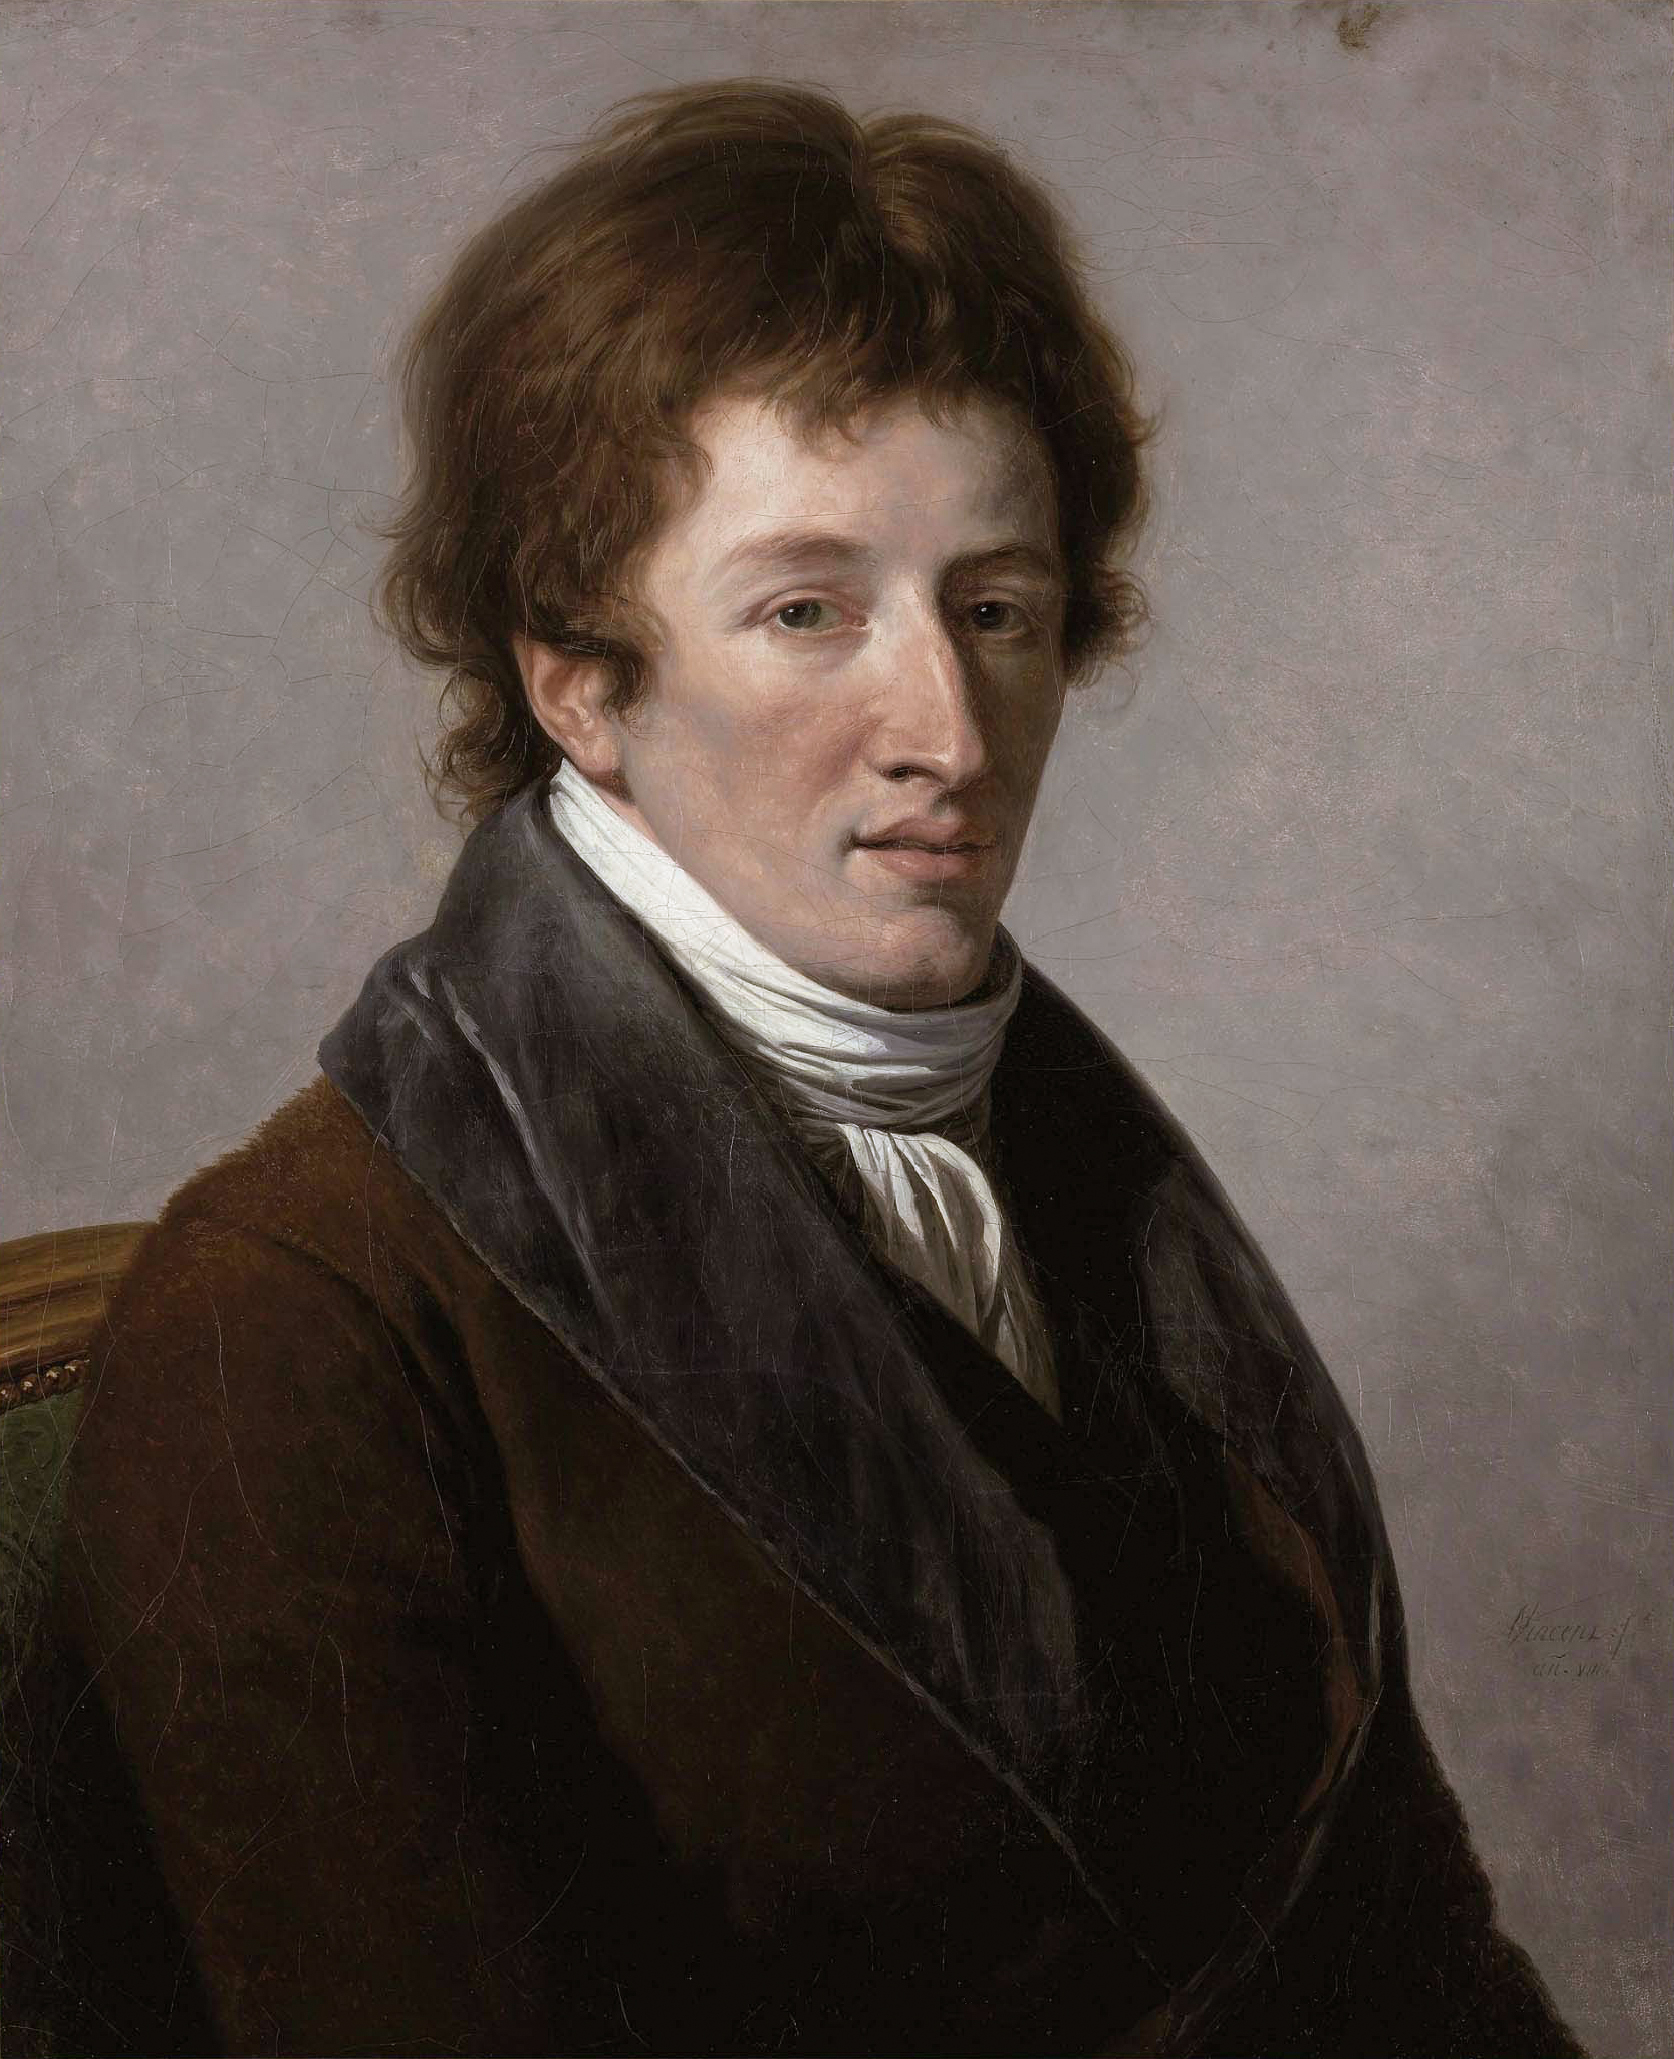 http://upload.wikimedia.org/wikipedia/commons/7/78/Georges_Cuvier_3.jpg